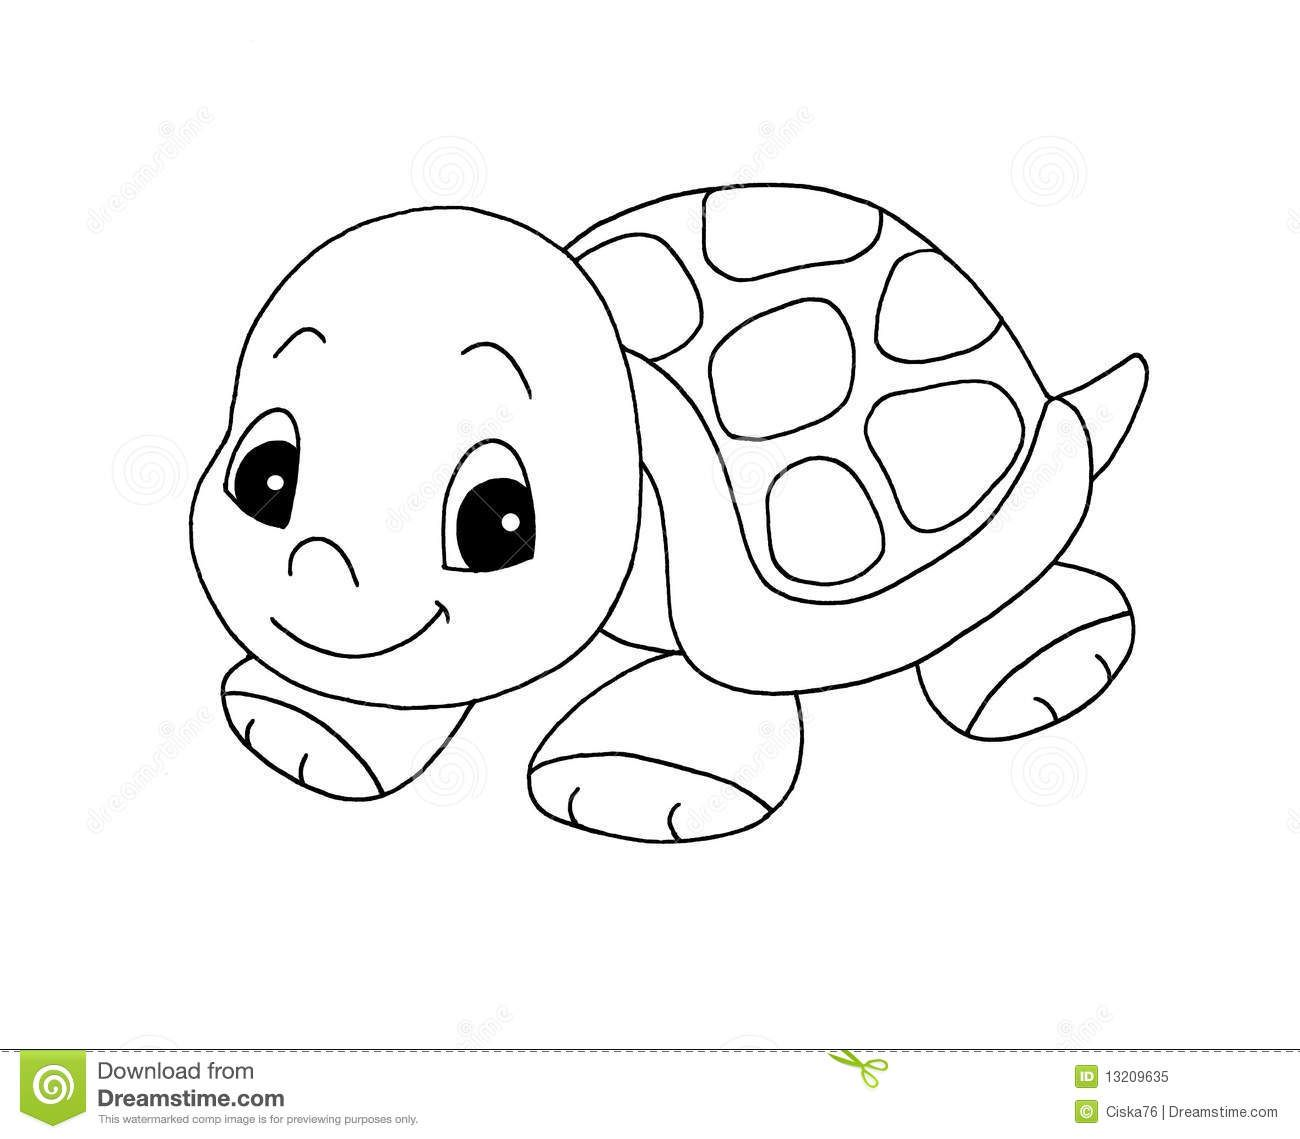 Box Turtles Are How To Draw A Turtle Of A Deer In